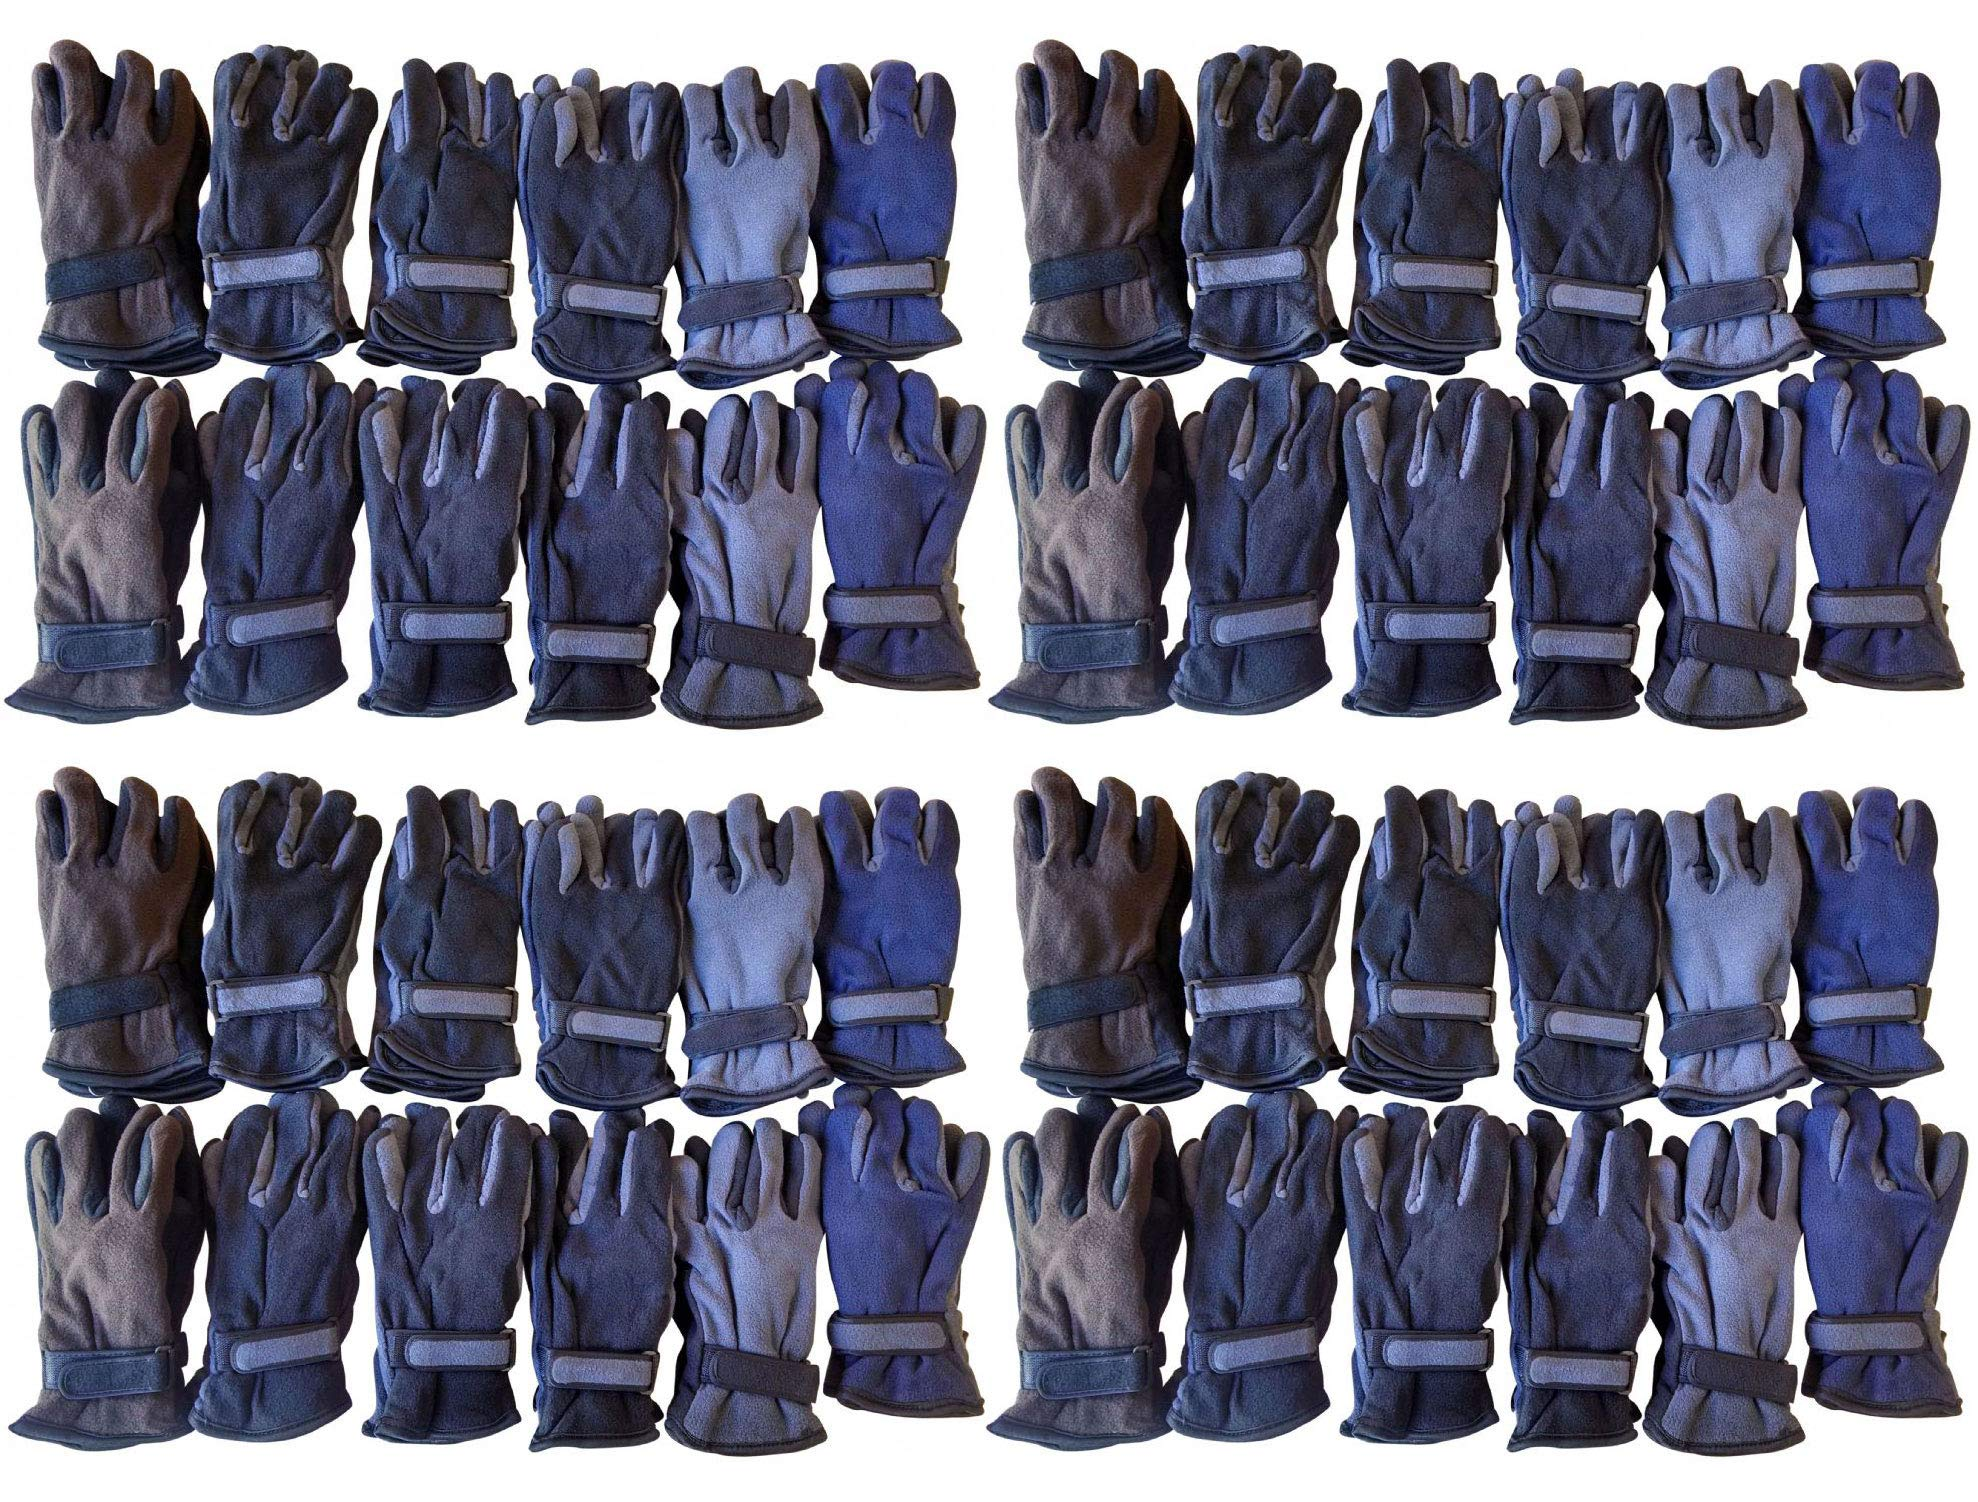 Yacht & Smith 48 Pairs Mens Womens Value Pack of Unisex Warm Winter Fleece Gloves Many Colors One Size (Assorted)